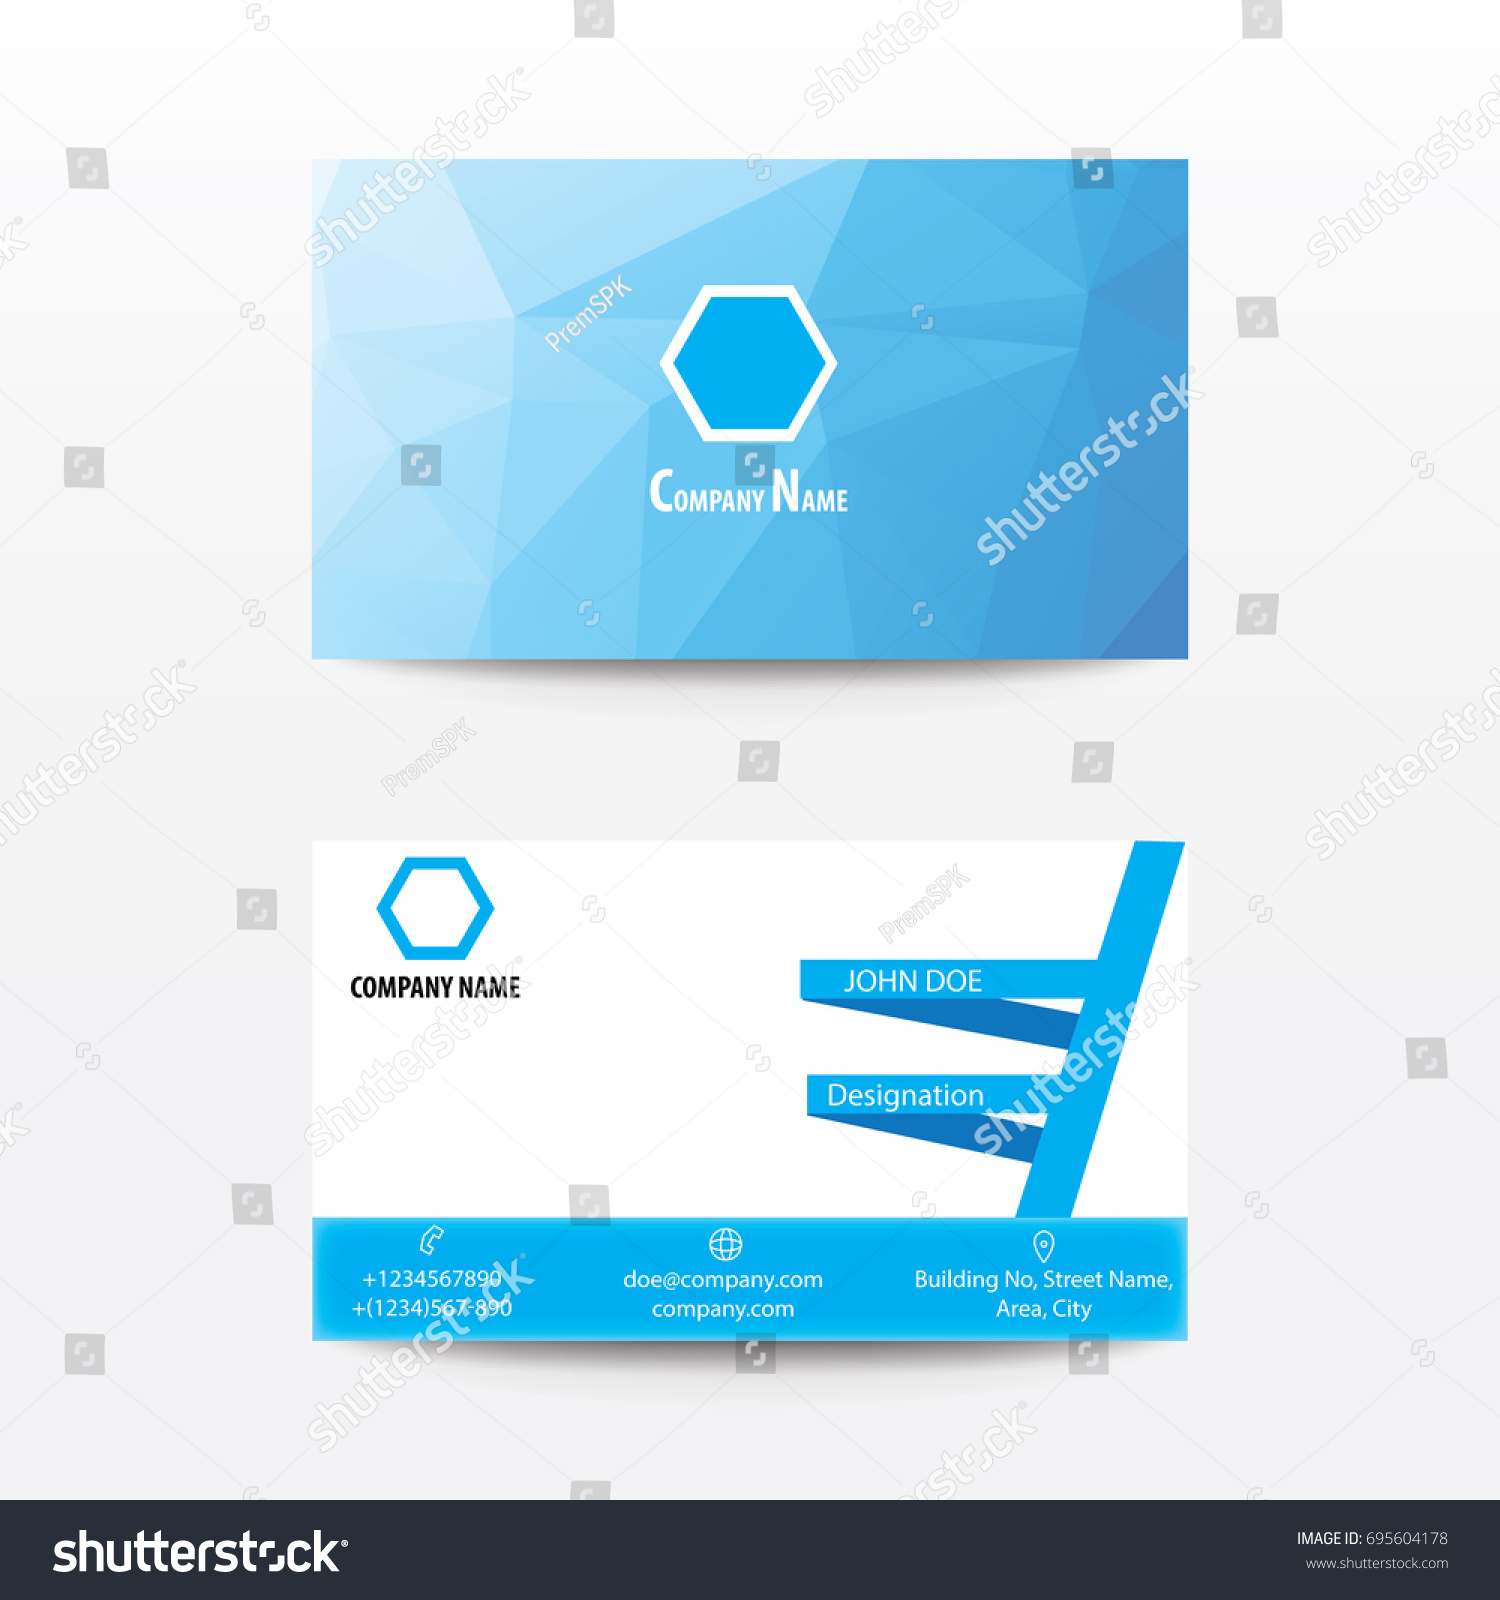 Business card blue gallery free business cards modern monopoly business card blue stock vector 695604178 modern monopoly business card blue magicingreecefo gallery magicingreecefo Images